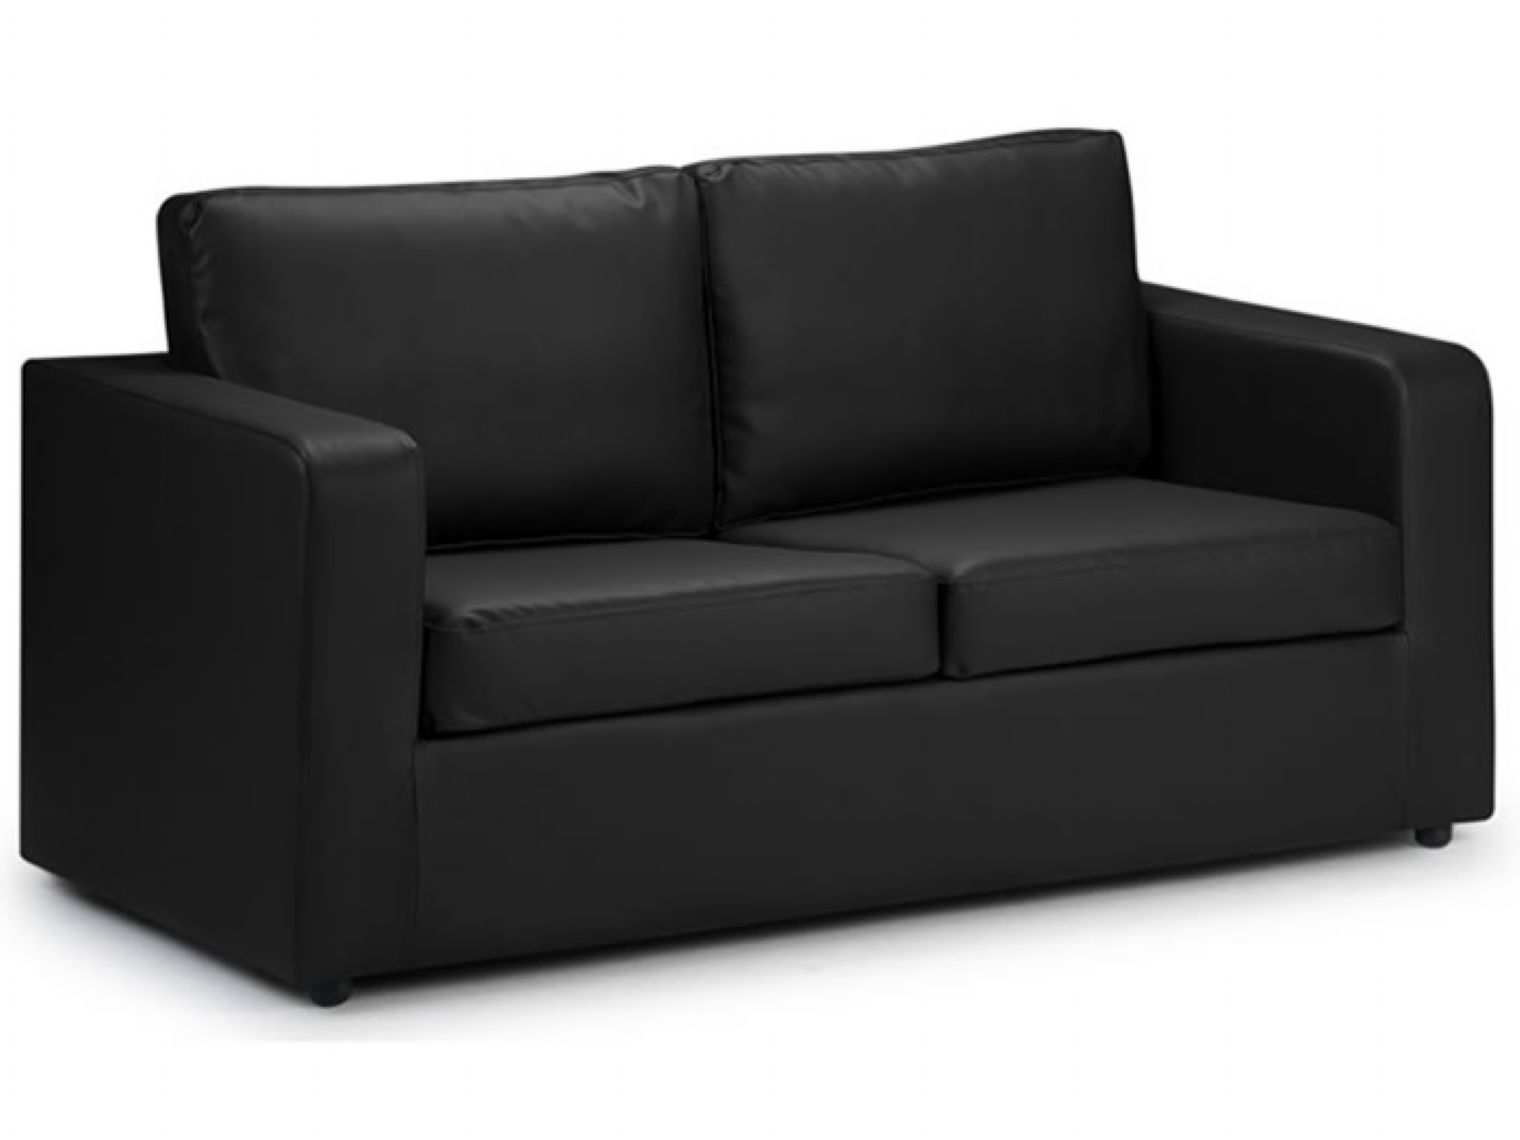 Ledersofa Ikea Säter Ikea Leather Sofa 1000 Images About Ideas For The House On